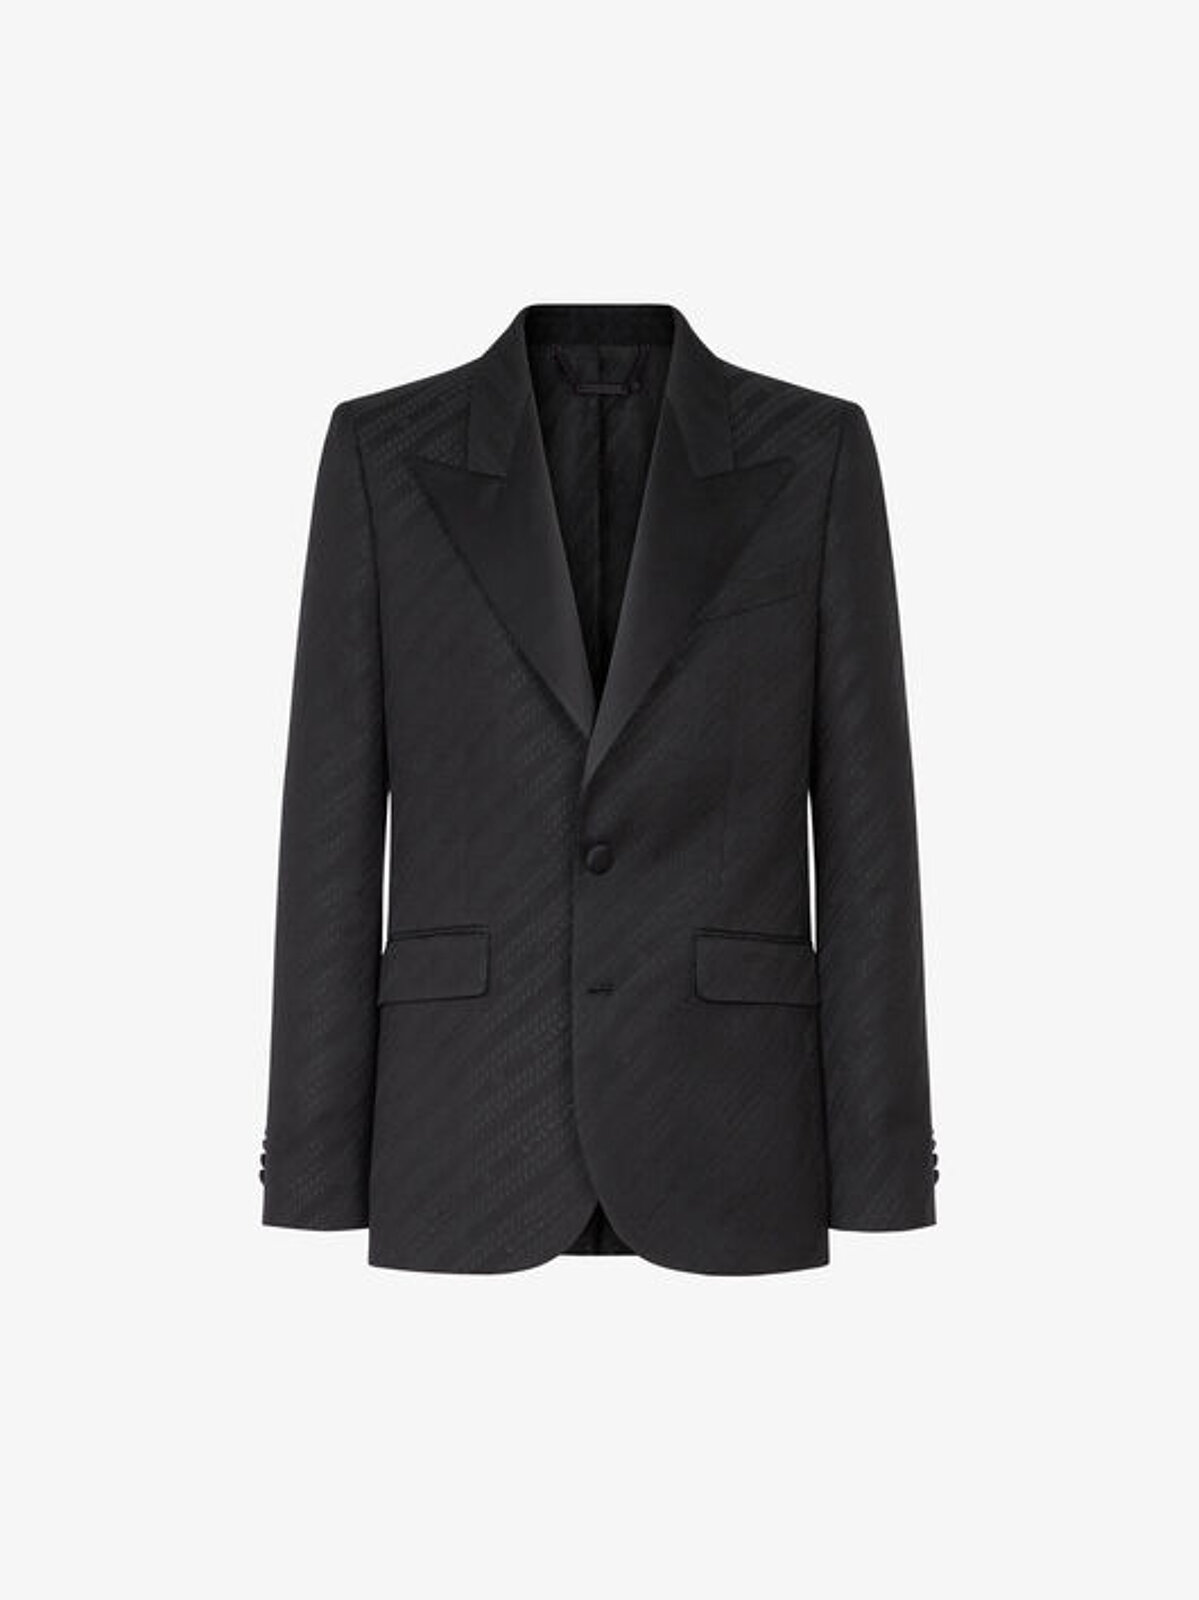 Giacca Jacquard Givenchy Chaîne Con Collo In Satin - Givenchy